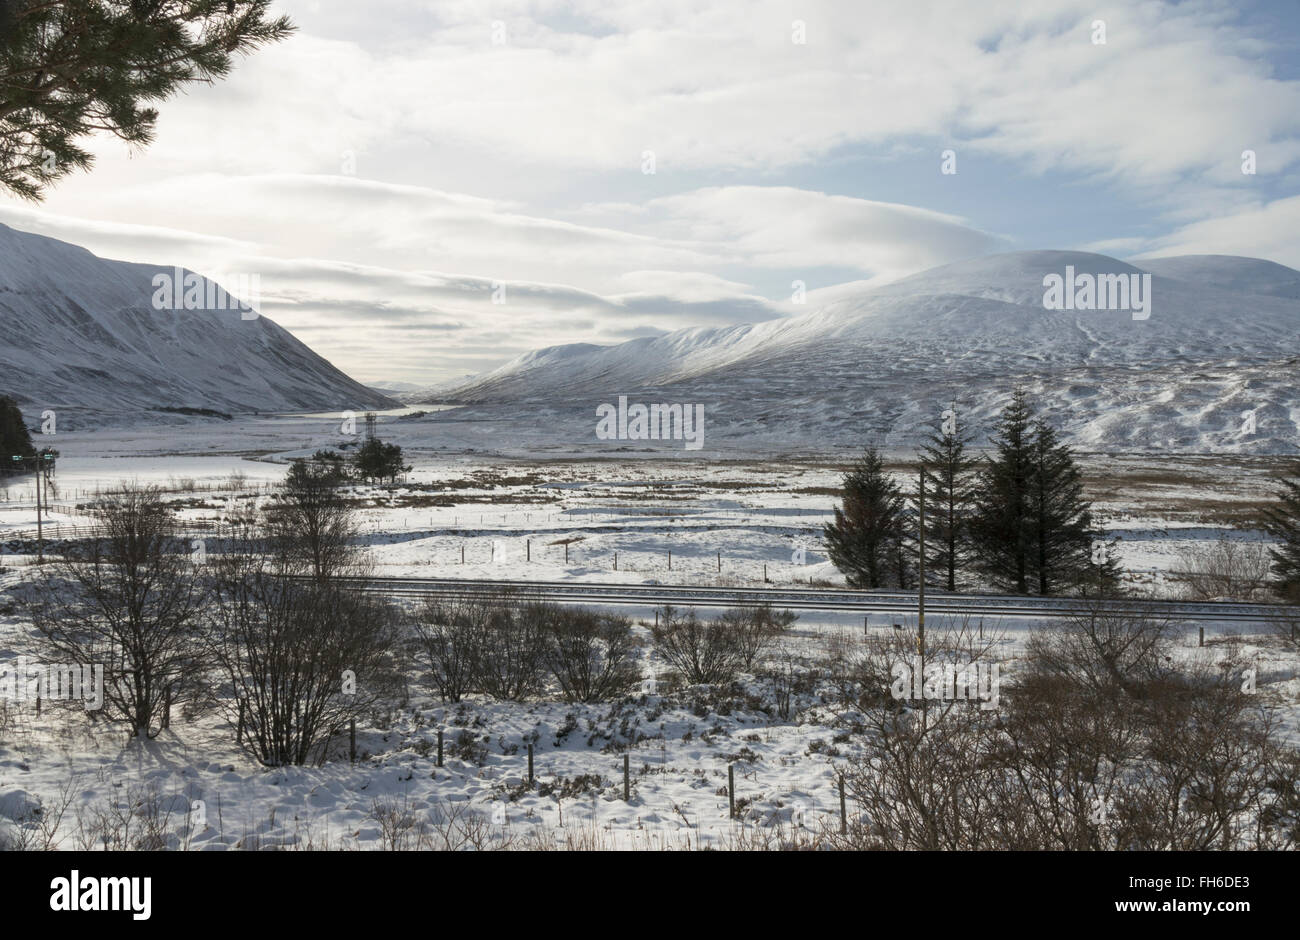 Scottish Highlands winter landscape looking southwest to river Garry and Loch Garry from Dalnaspidal,Perthsire,Scotland,UK, - Stock Image